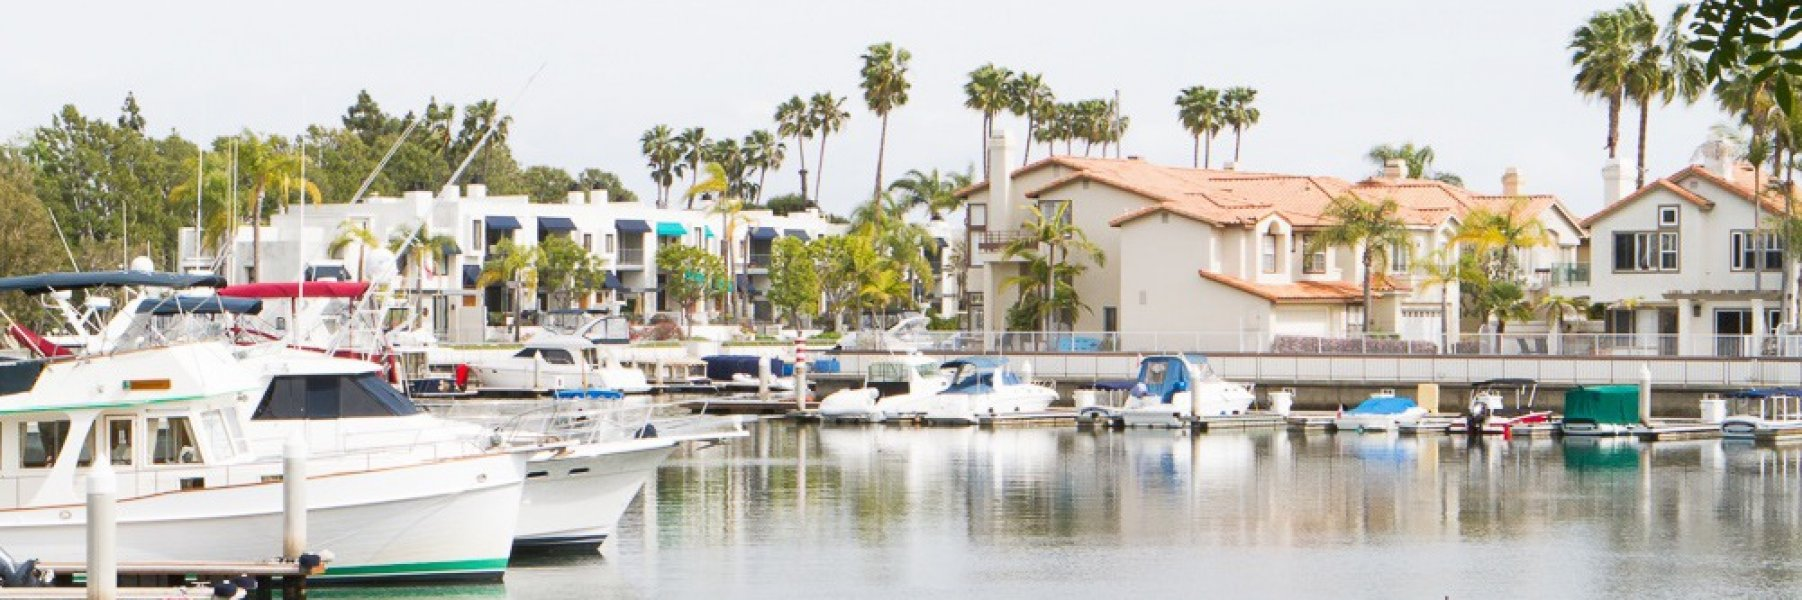 Spinnaker Bay is a community of homes in Long Beach California